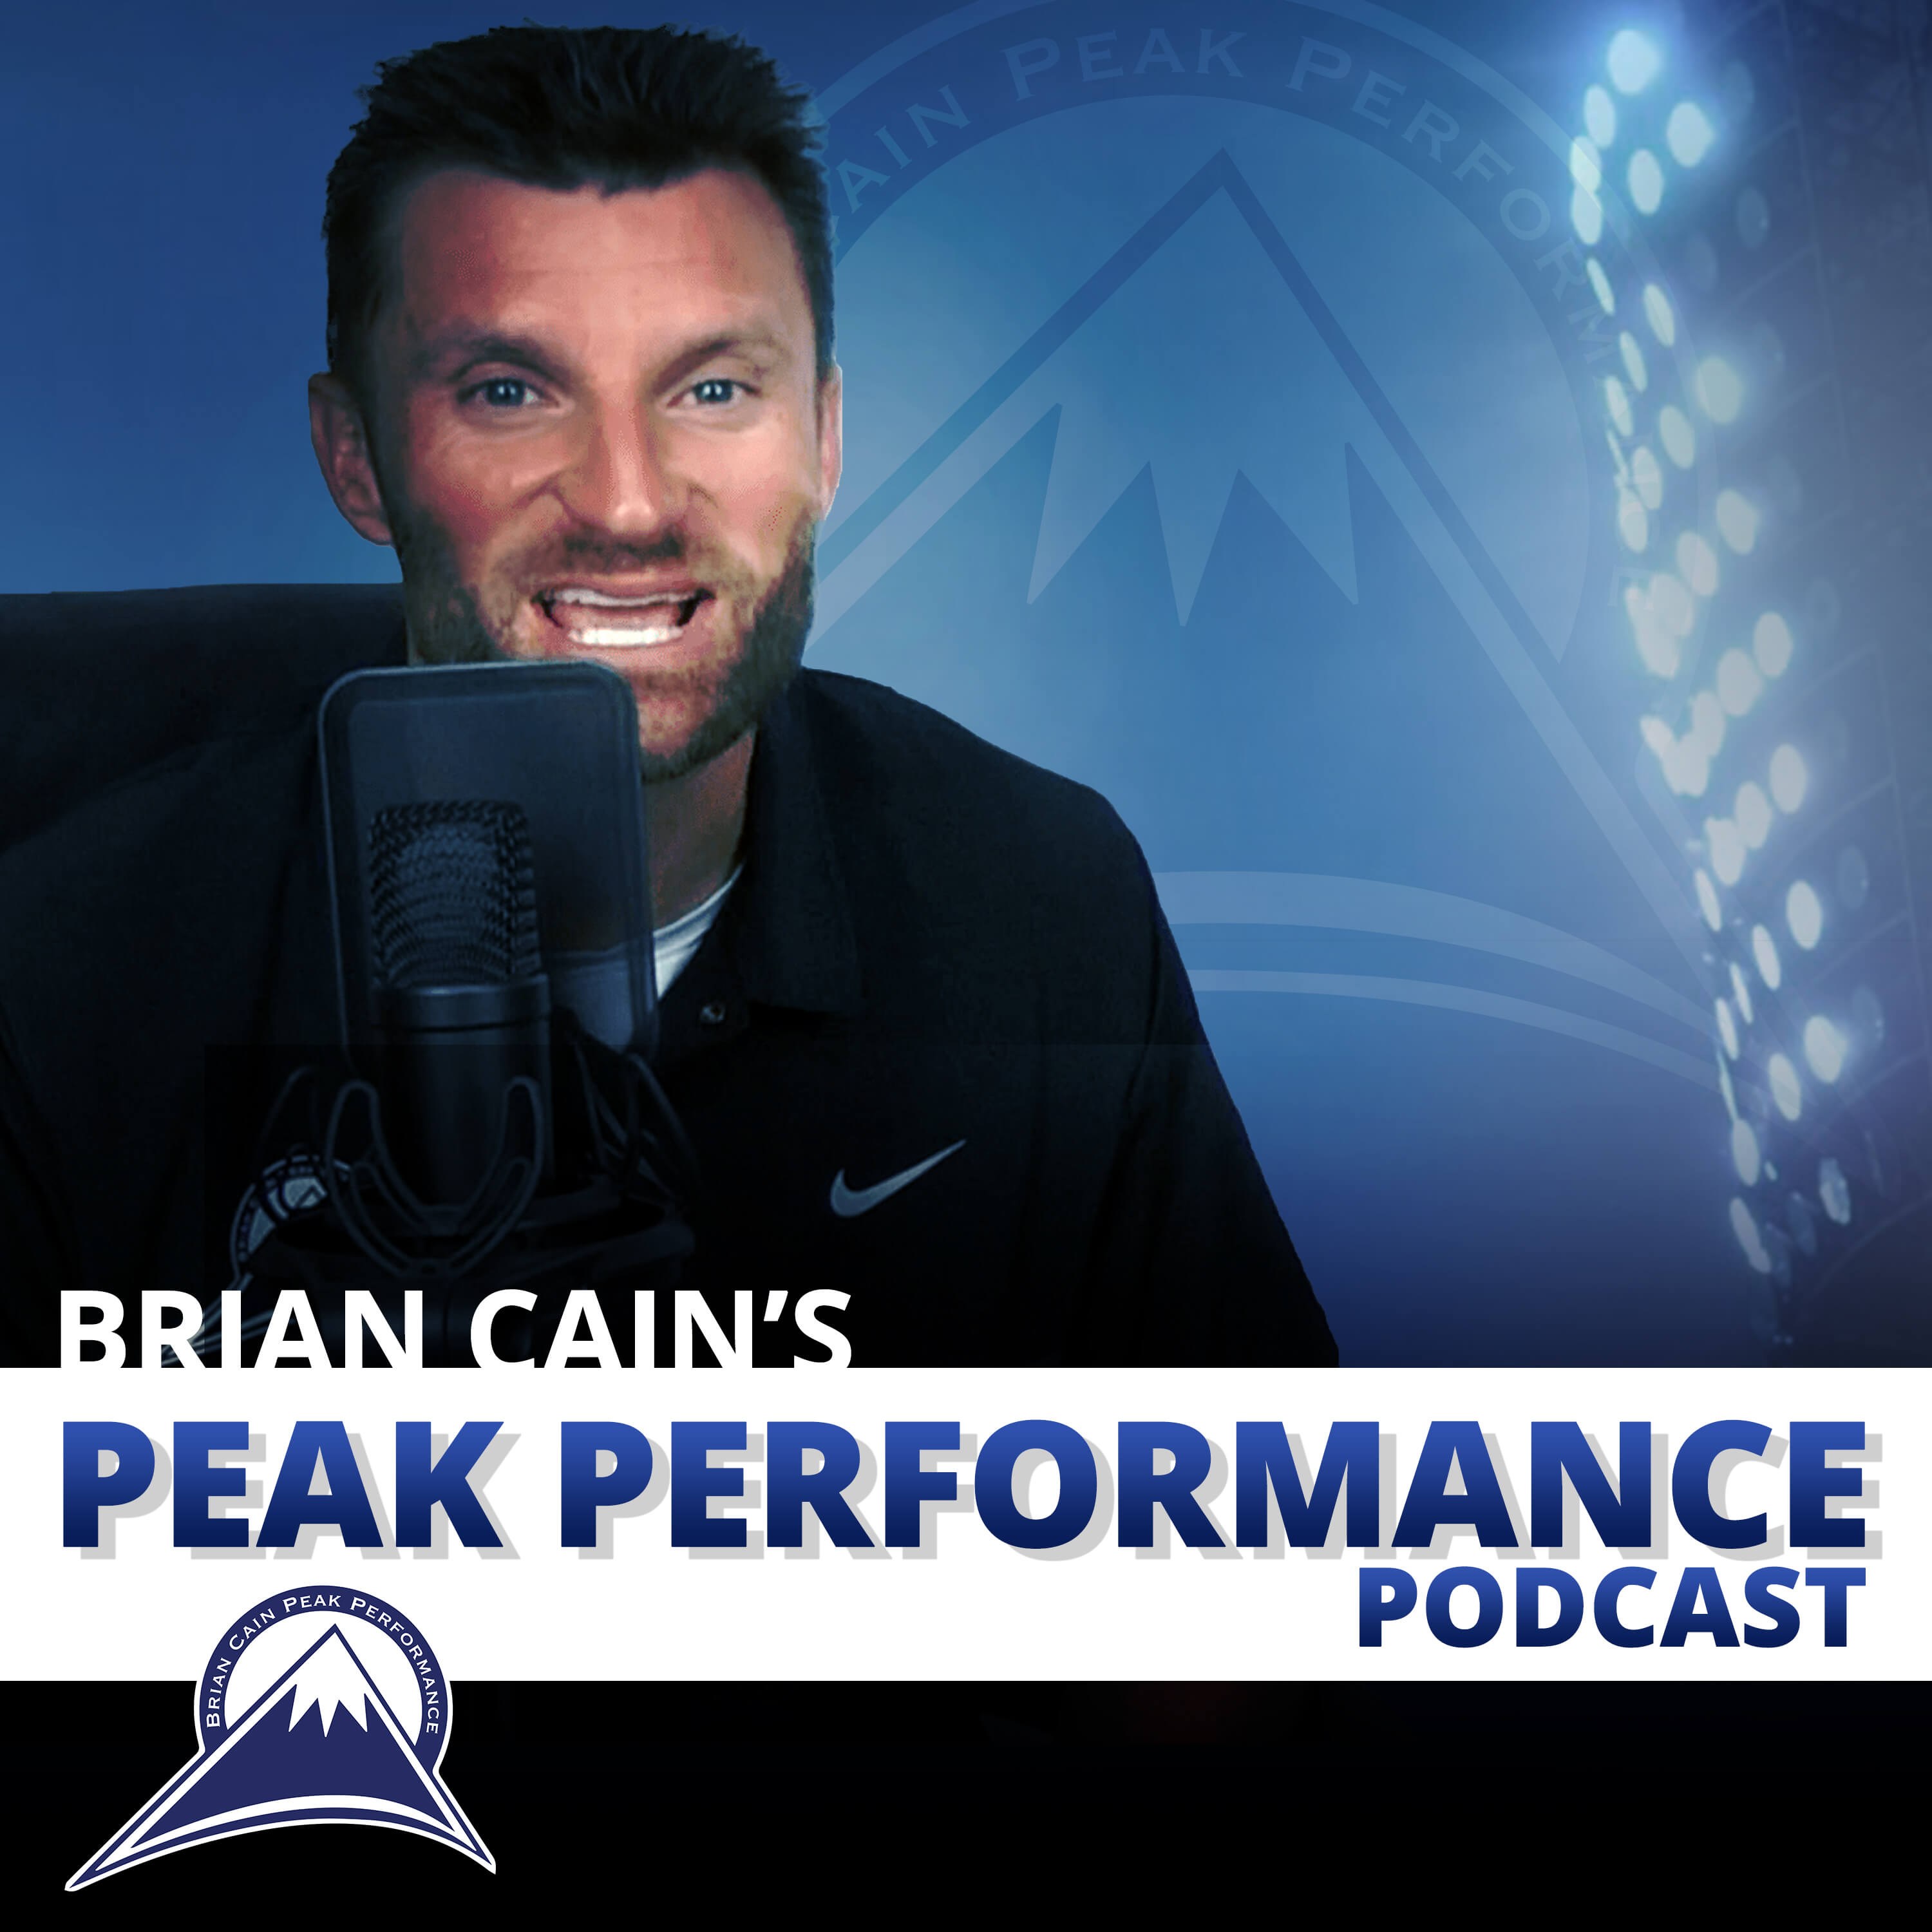 The Peak Performance Podcast